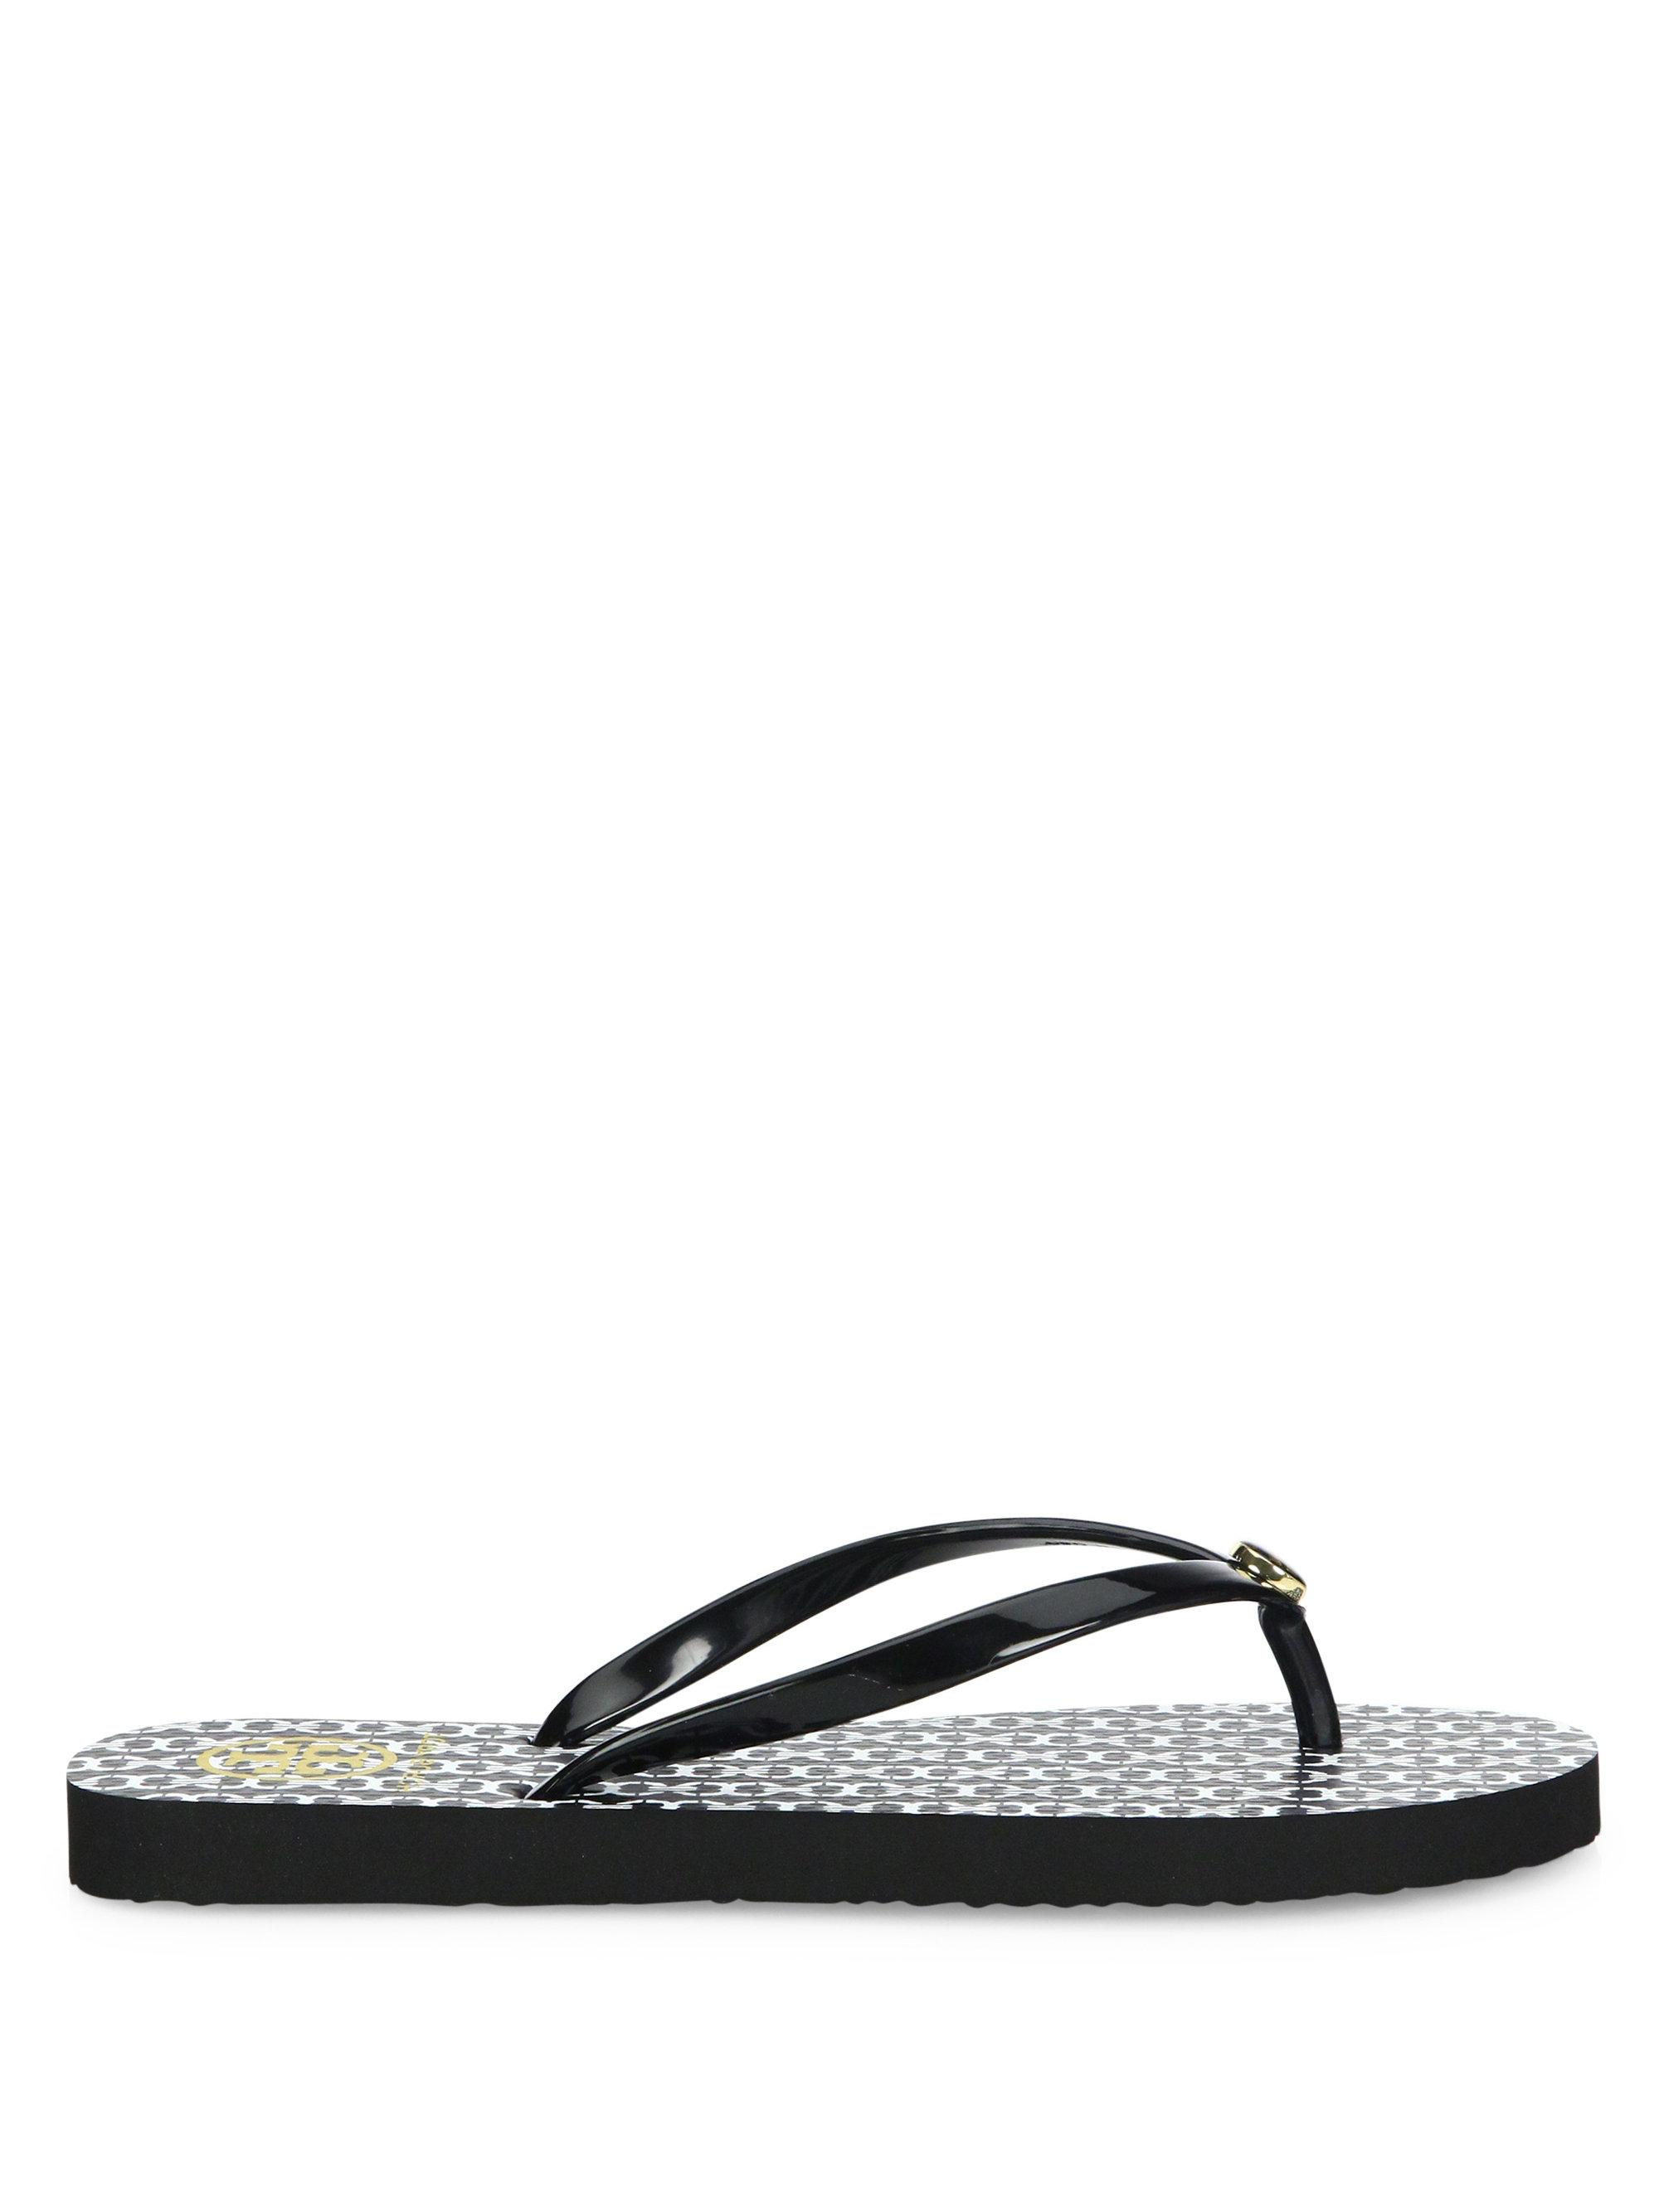 365cc856a85 Tory Burch Thin Gemini Link Flip Flops in Black - Lyst